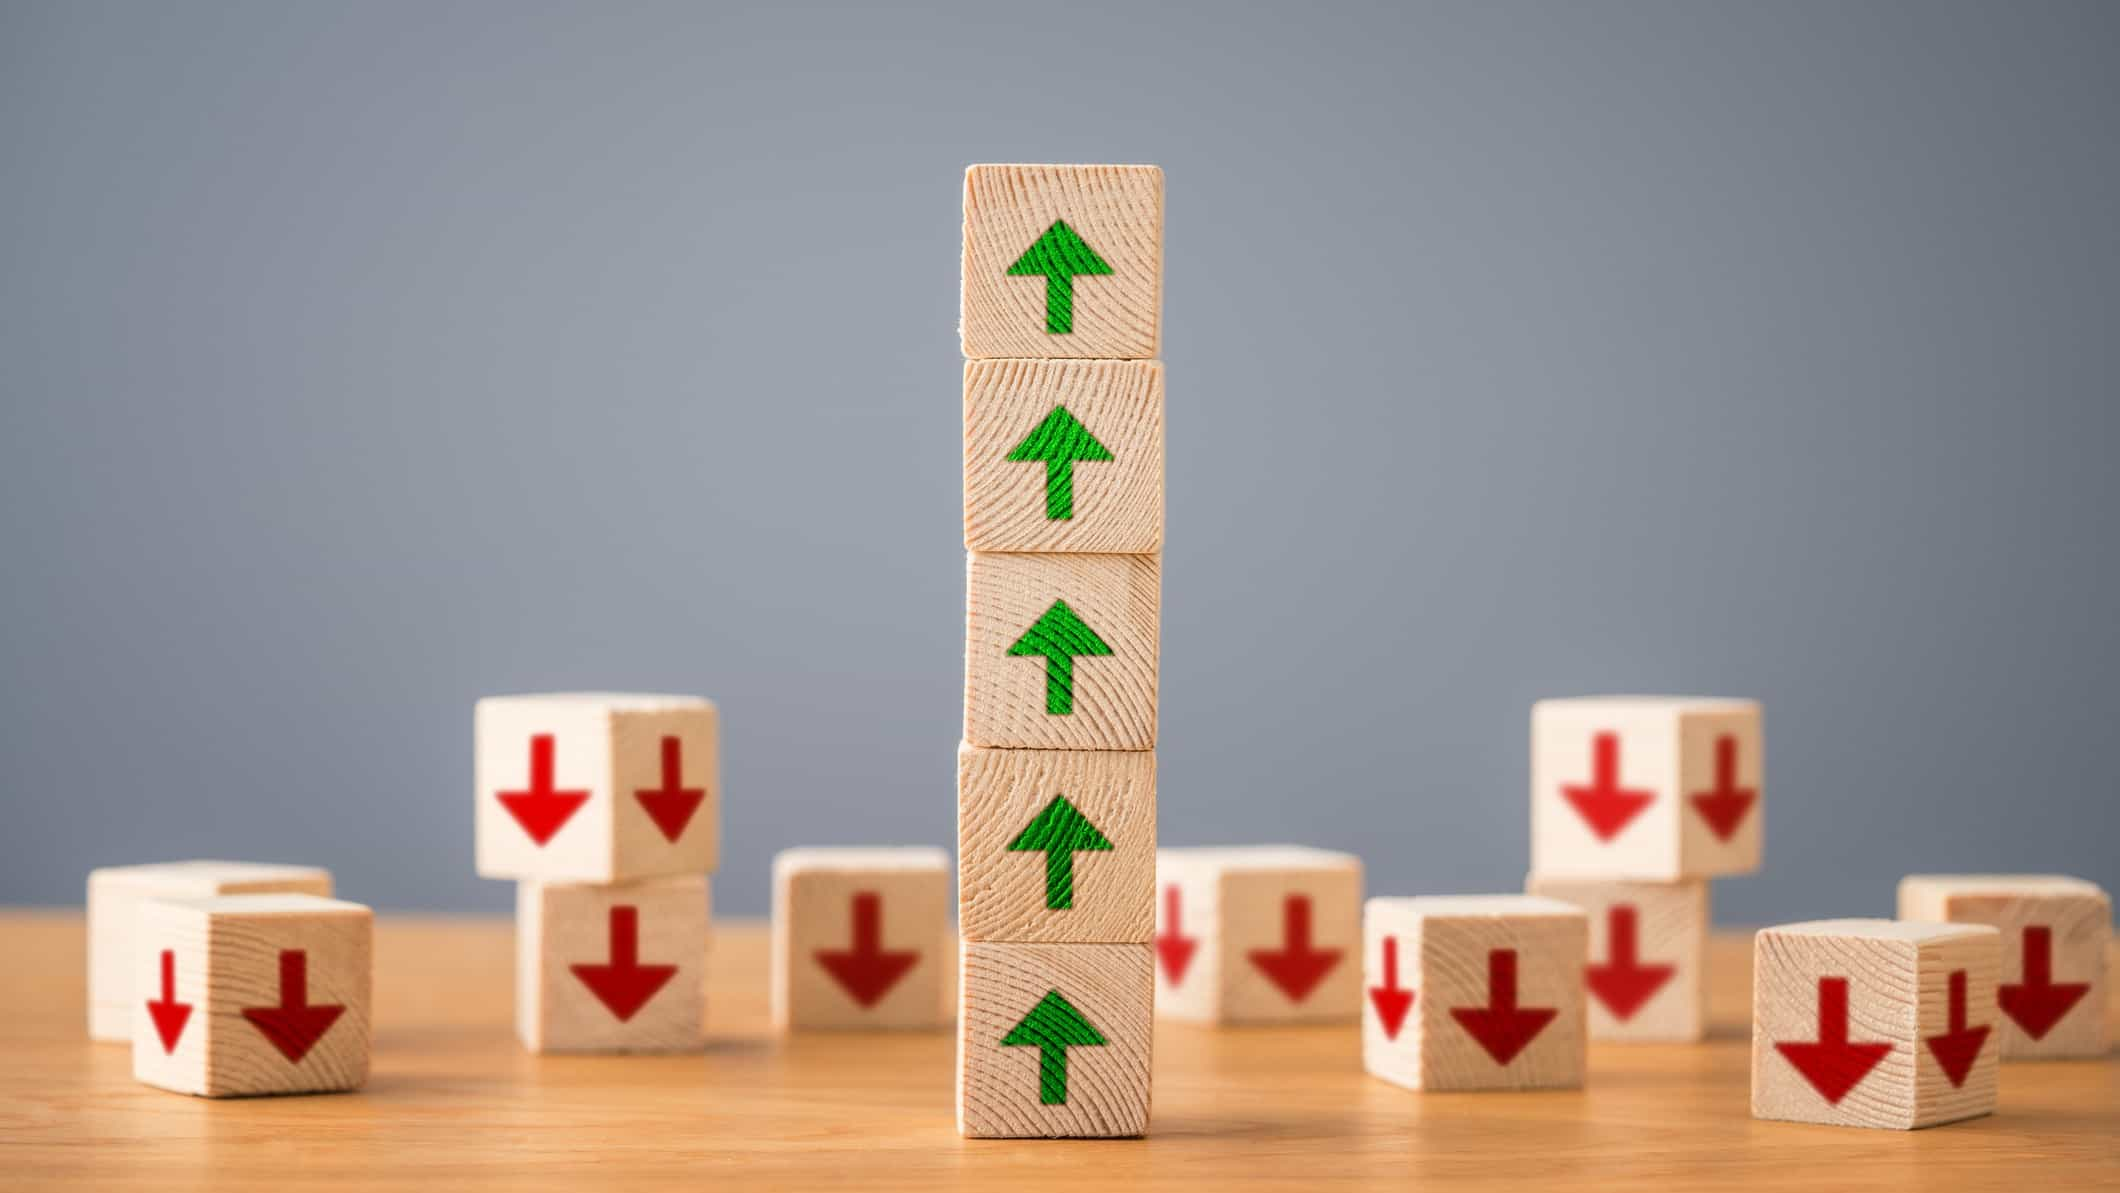 Five stacked building blocks with green arrows, indicating rising inflation or share prices